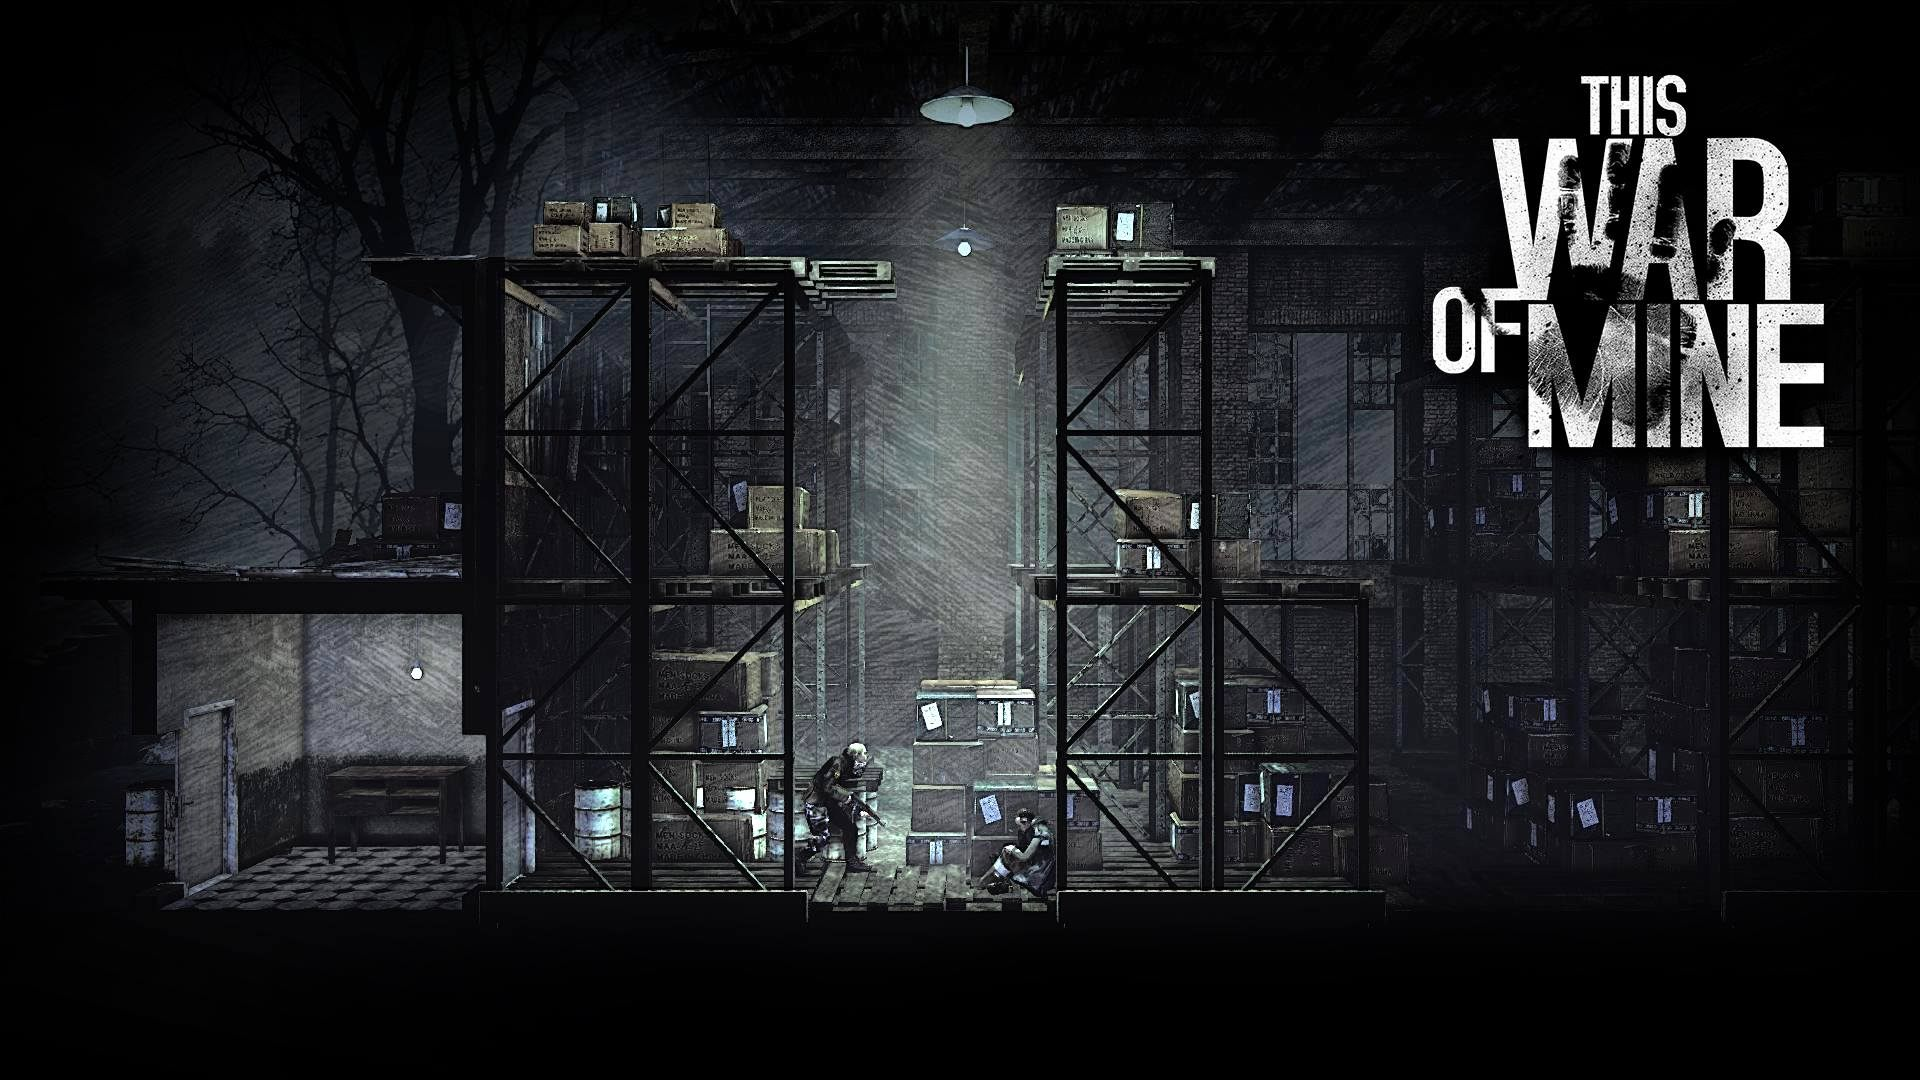 This War Of Mine Wallpaper: This War Of Mine WALLPAPER Wallpaper #26